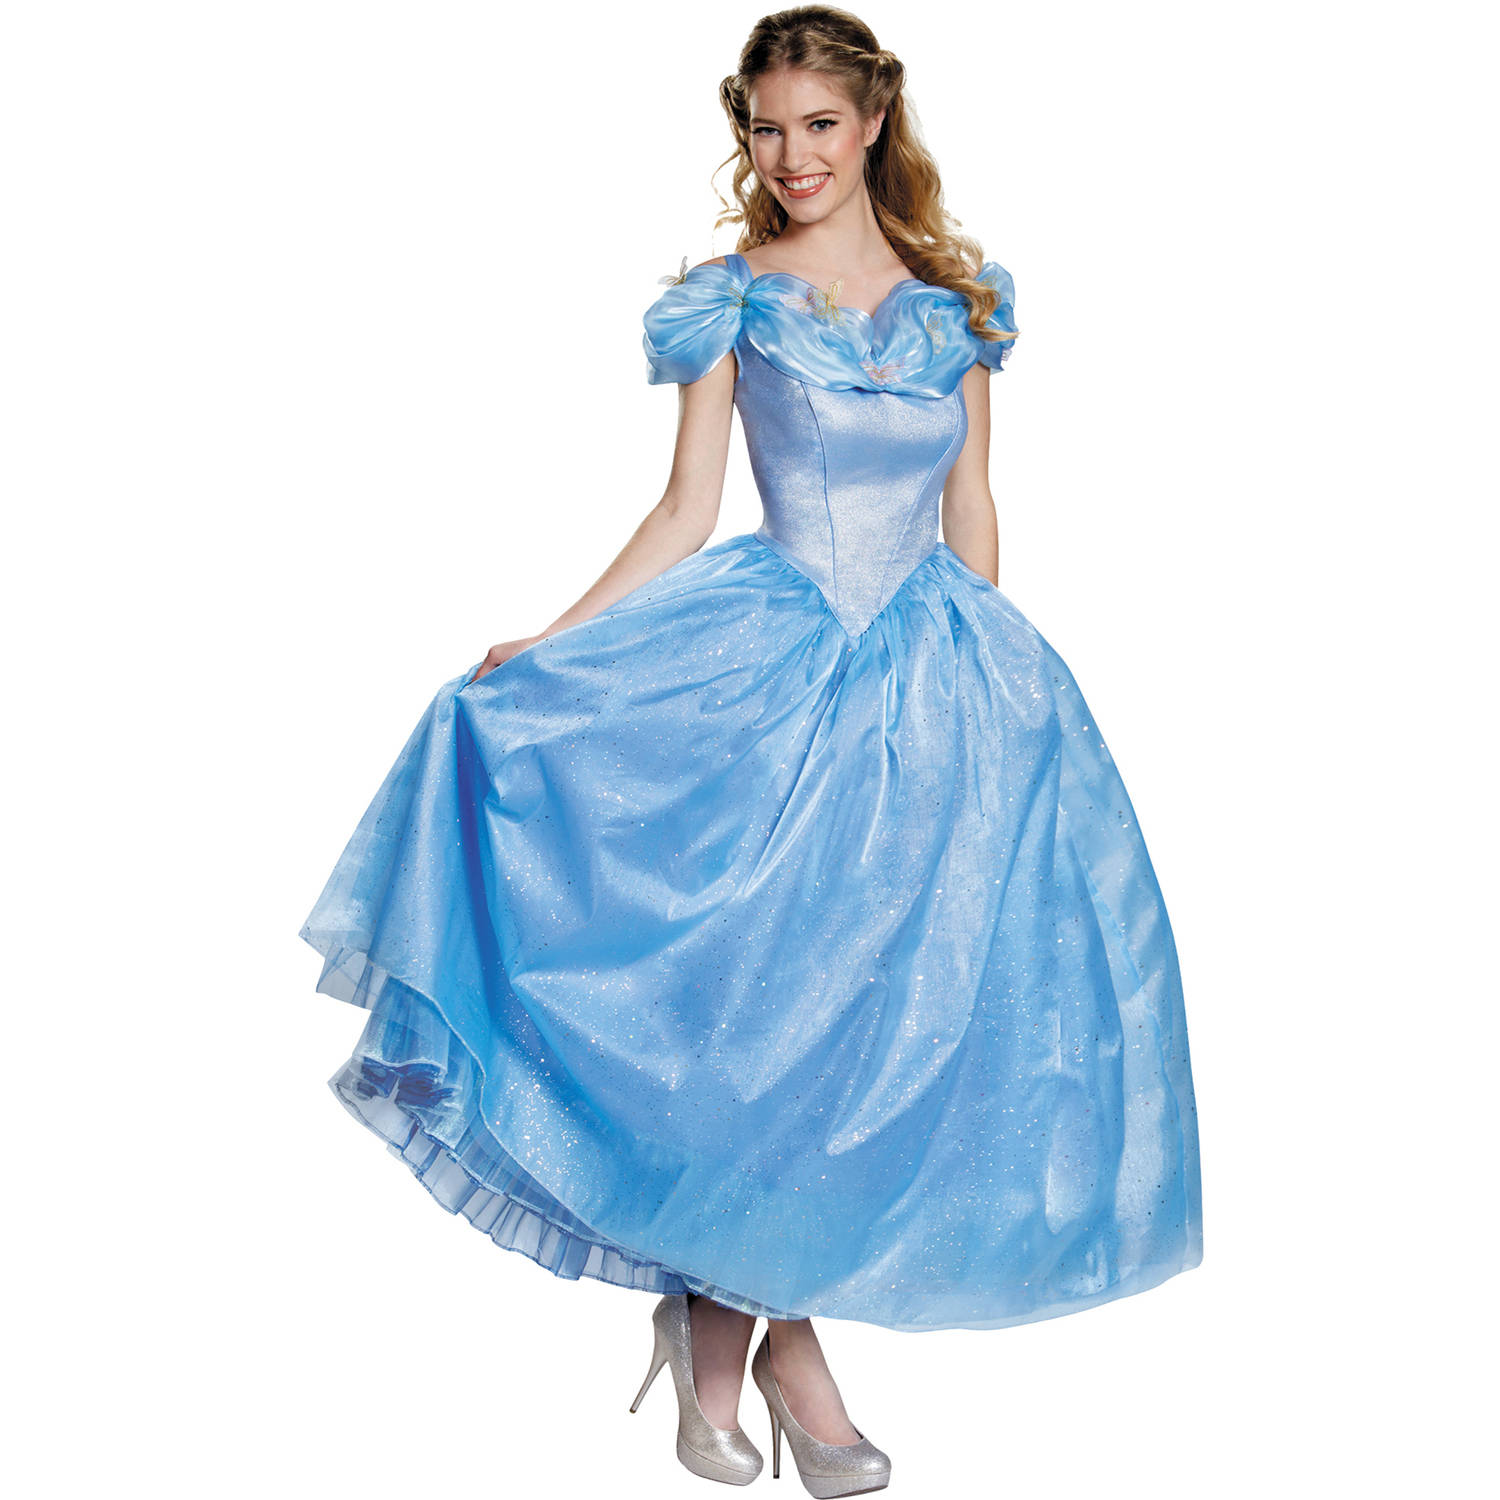 Cinderella Adult Prestige Women's Adult Halloween Costume